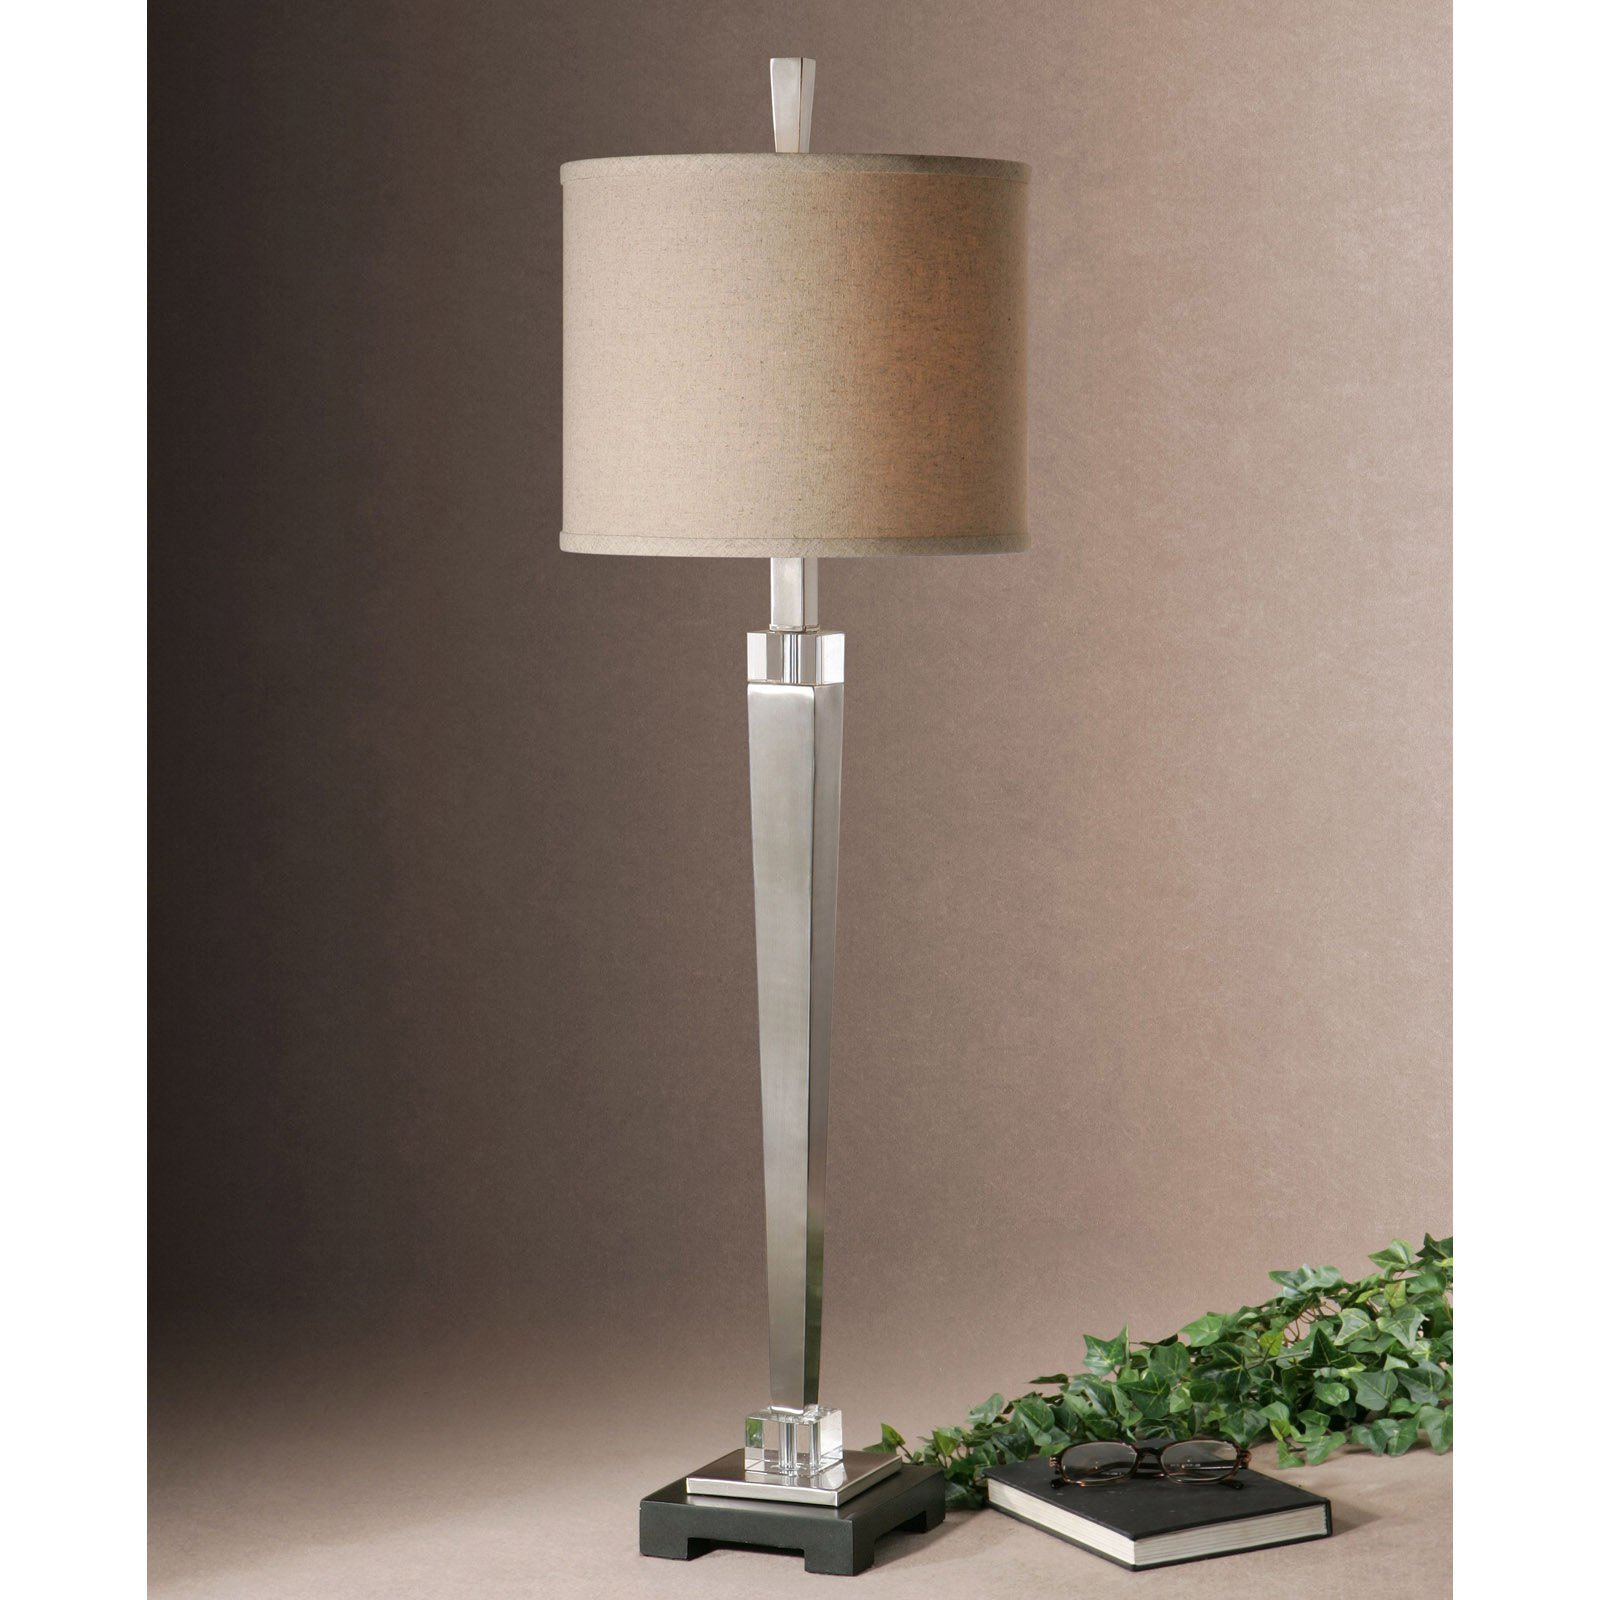 Uttermost Terme 29581-1 Brushed Nickel Buffet Table Lamp